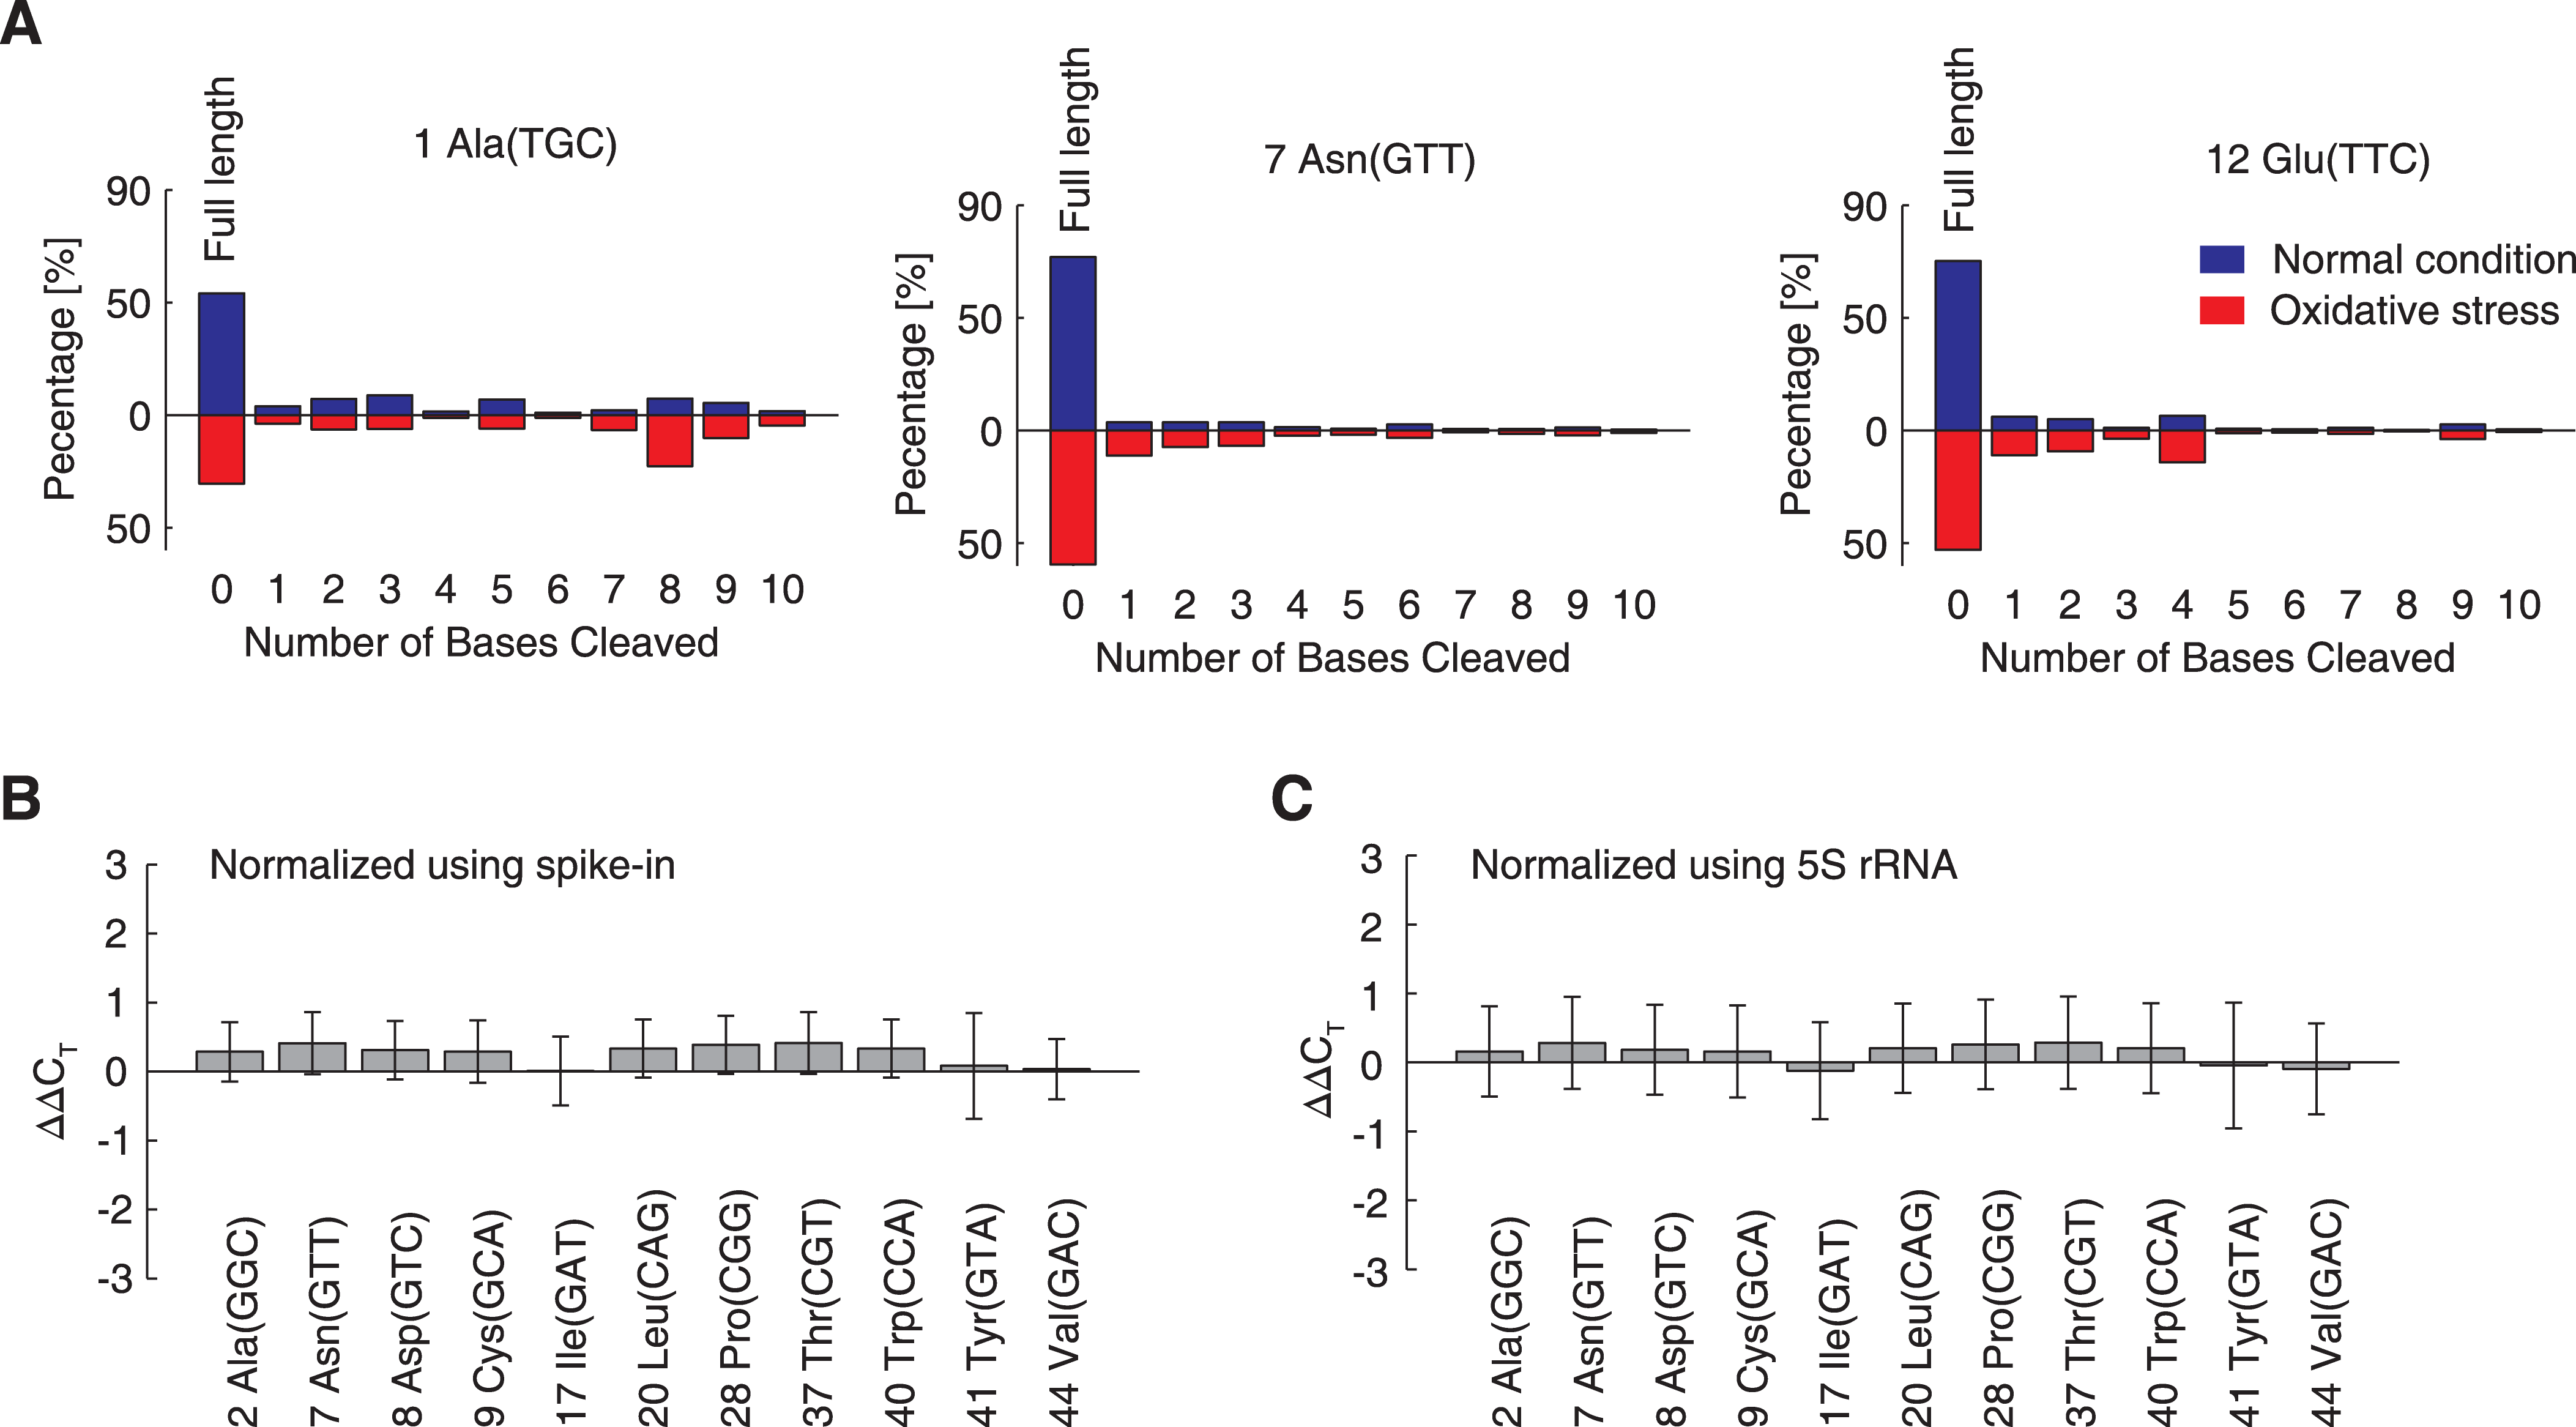 Under oxidative stress, tRNAs are degraded <i>in vivo</i>, but not in the cell-free <i>in vitro</i> translation system.